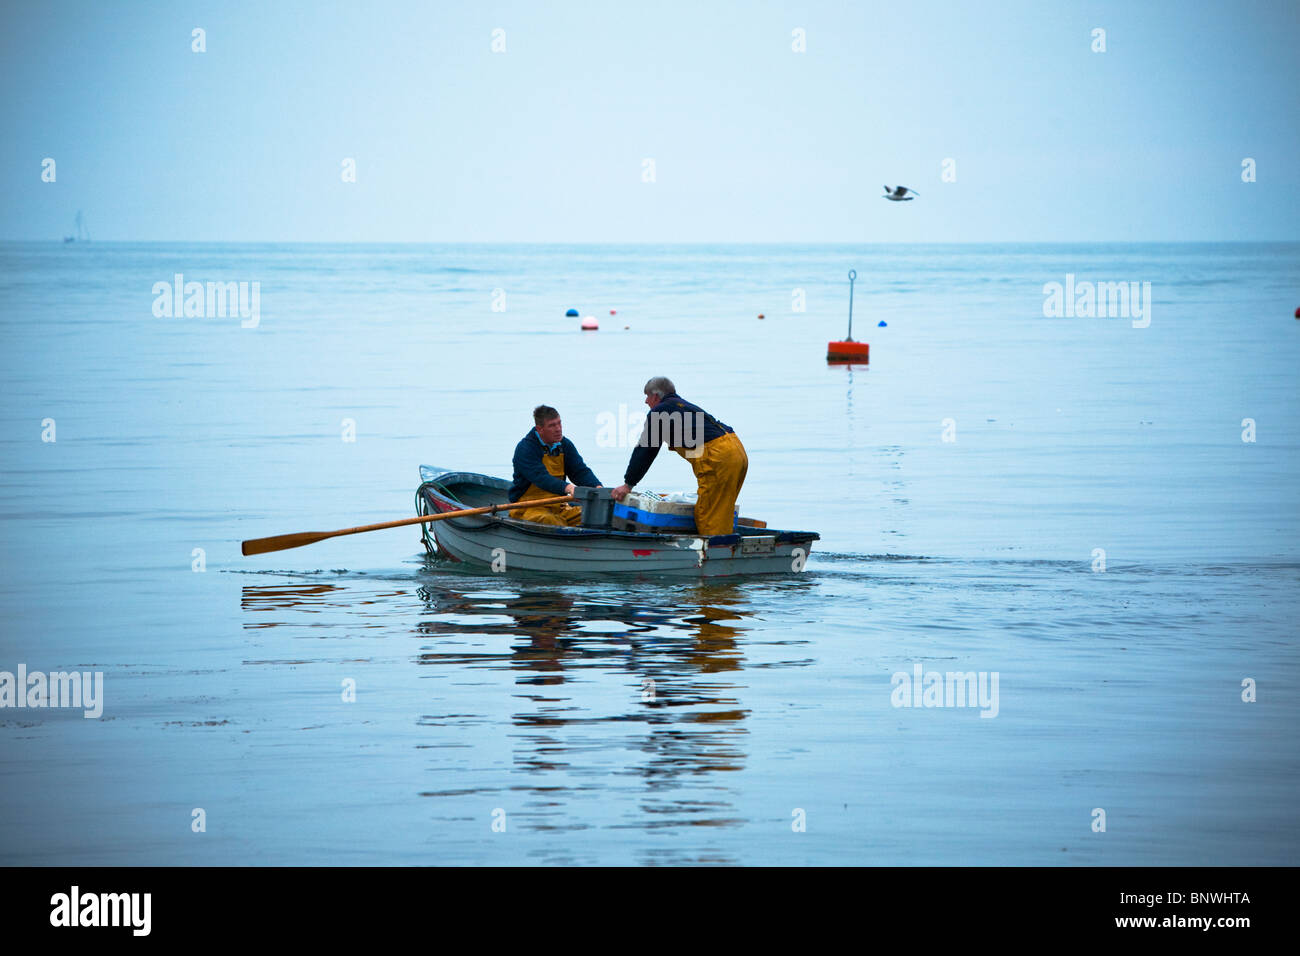 Fishermen rowing out to their fishing boat in the early morning, Swanage, Dorset, Uk - Stock Image